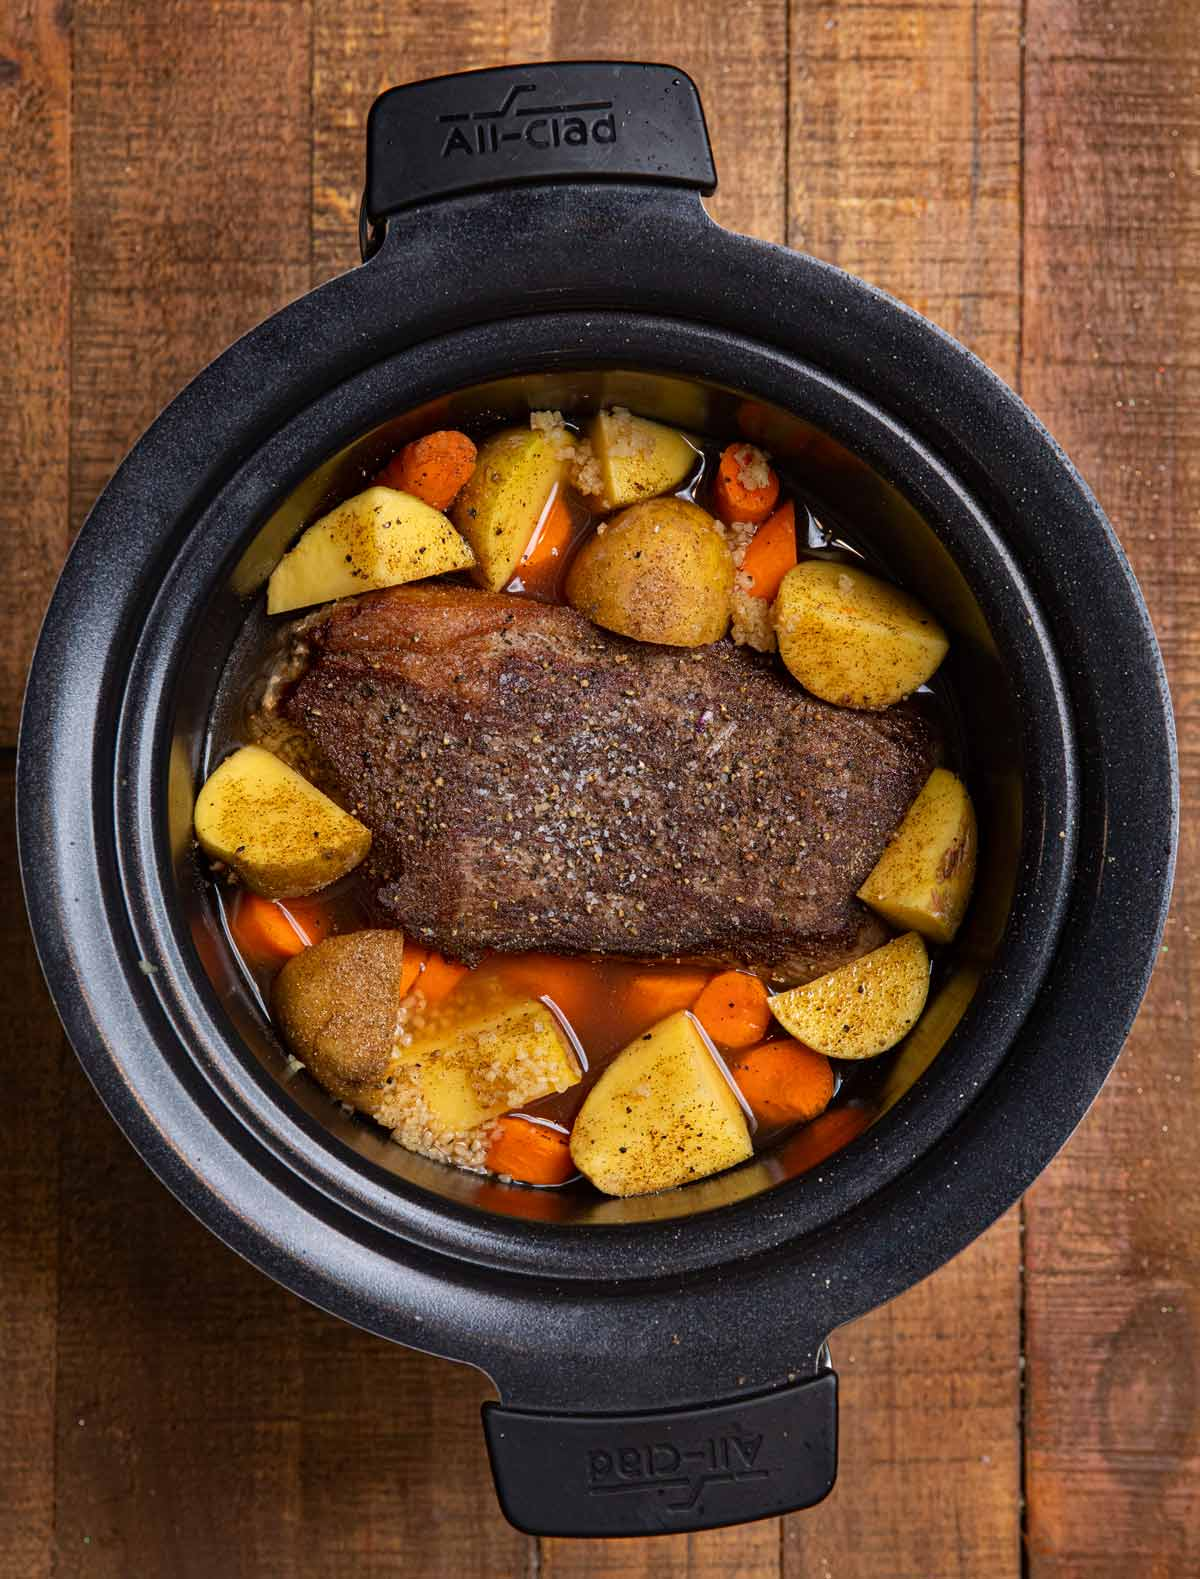 Slow Cooker Rump Roast in crock pot before cooking